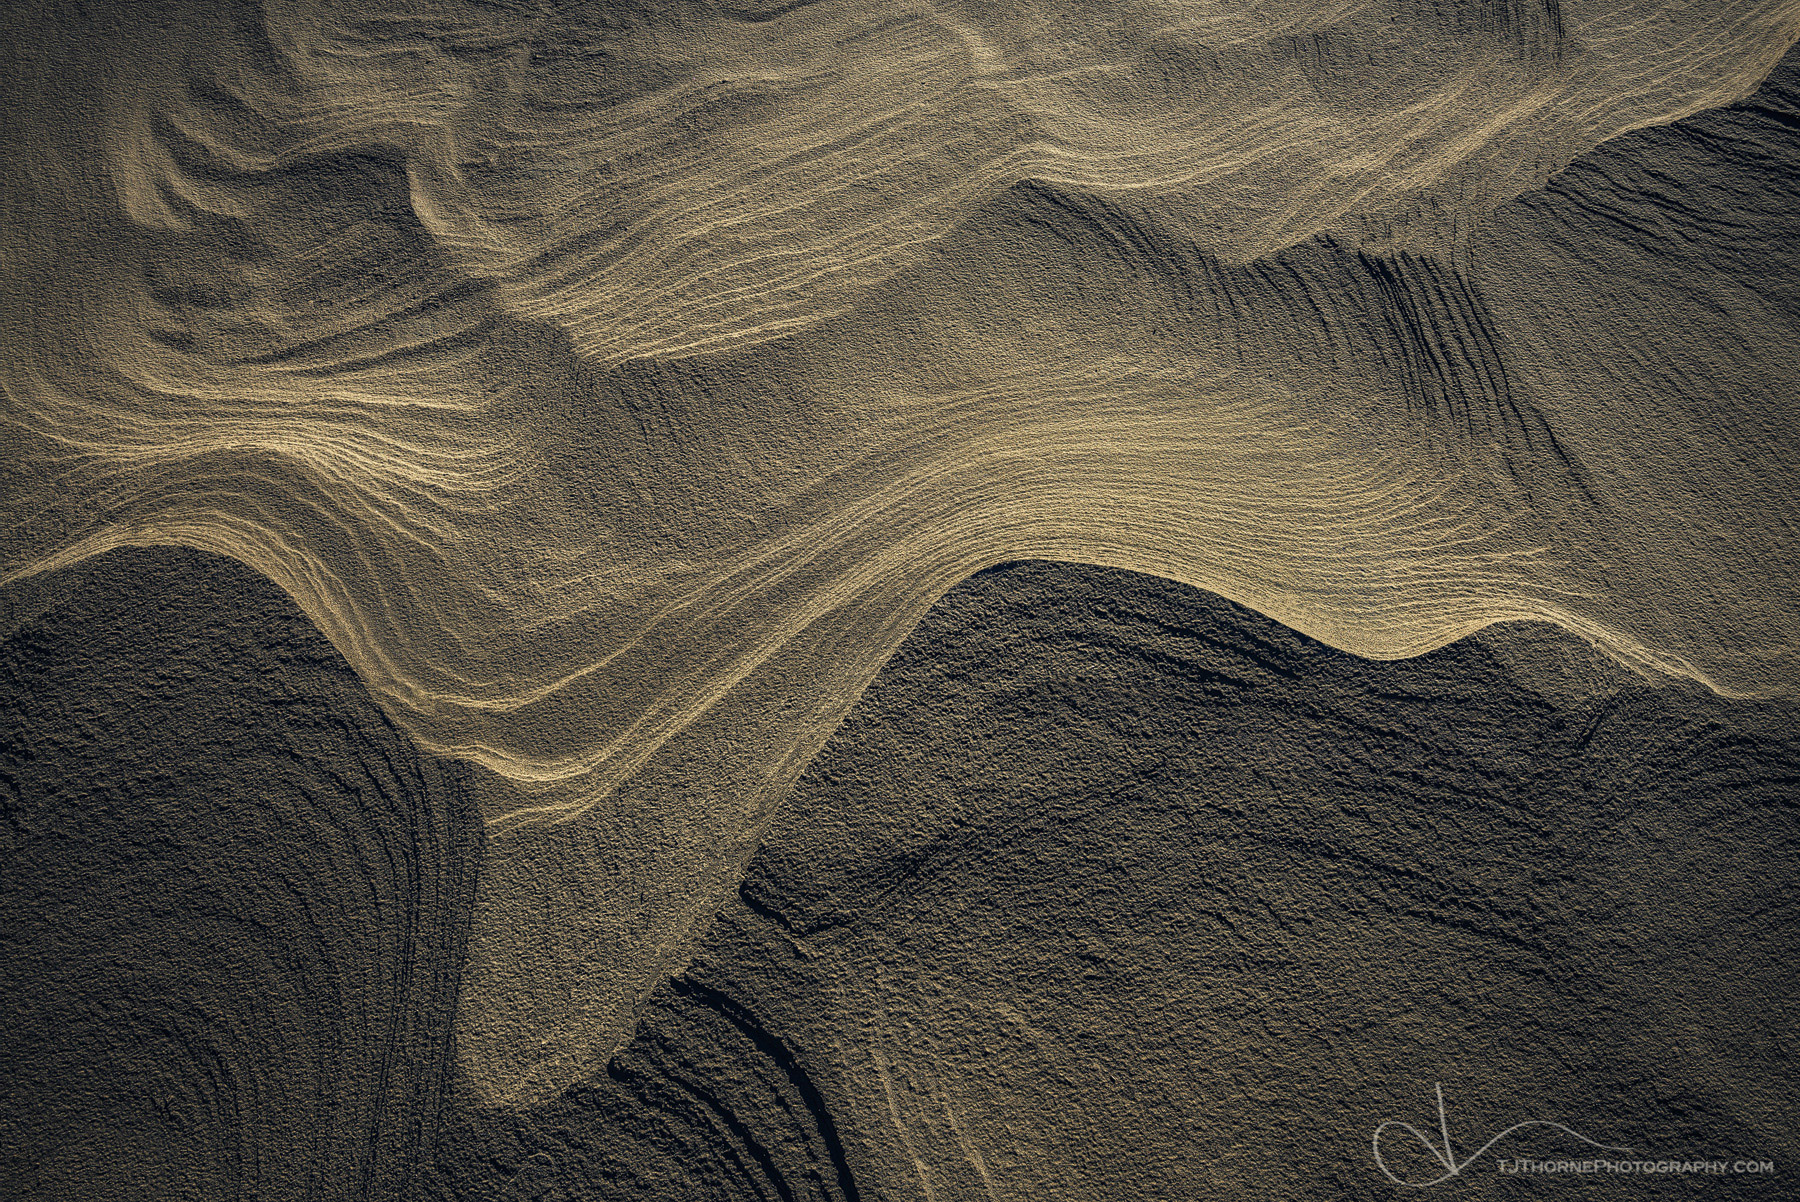 FINE ART LIMITED EDITION OF 100 A sandstone abstract in Death Valley National Park, California. This is an interesting image...